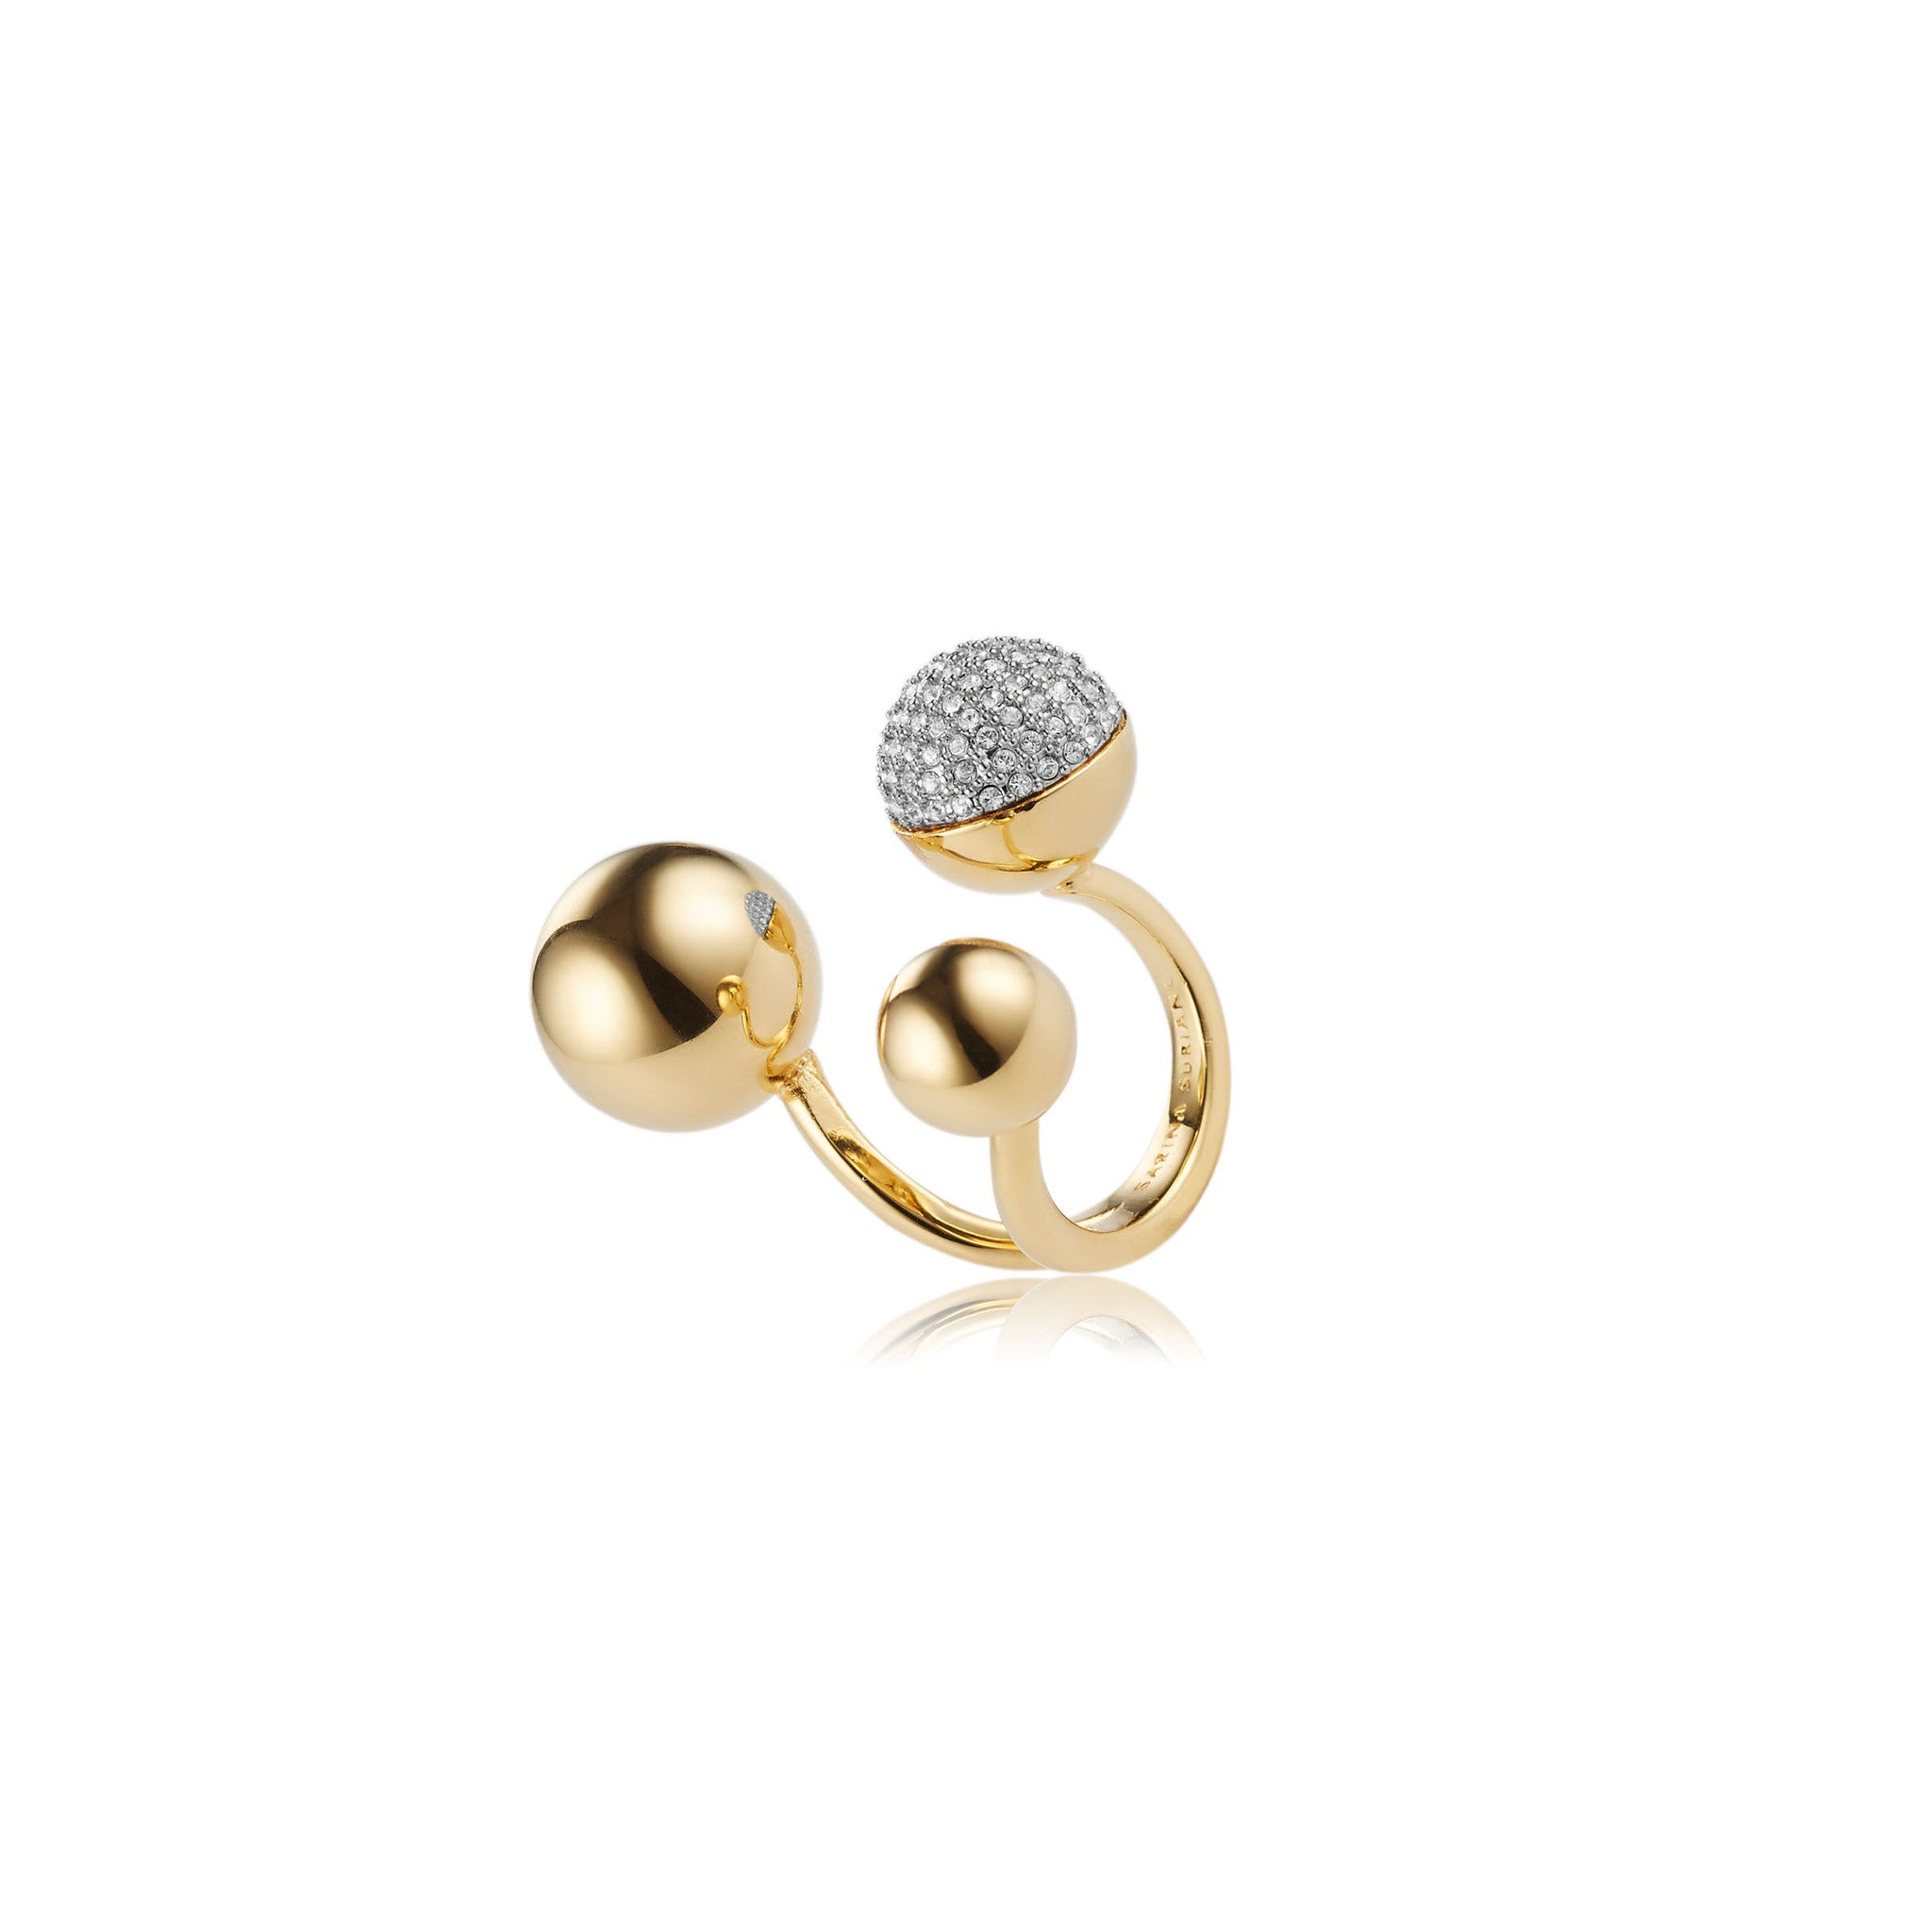 Solid brass, 18K gold plated Celestine ring with Swarovski® crystal pavè detailing - side